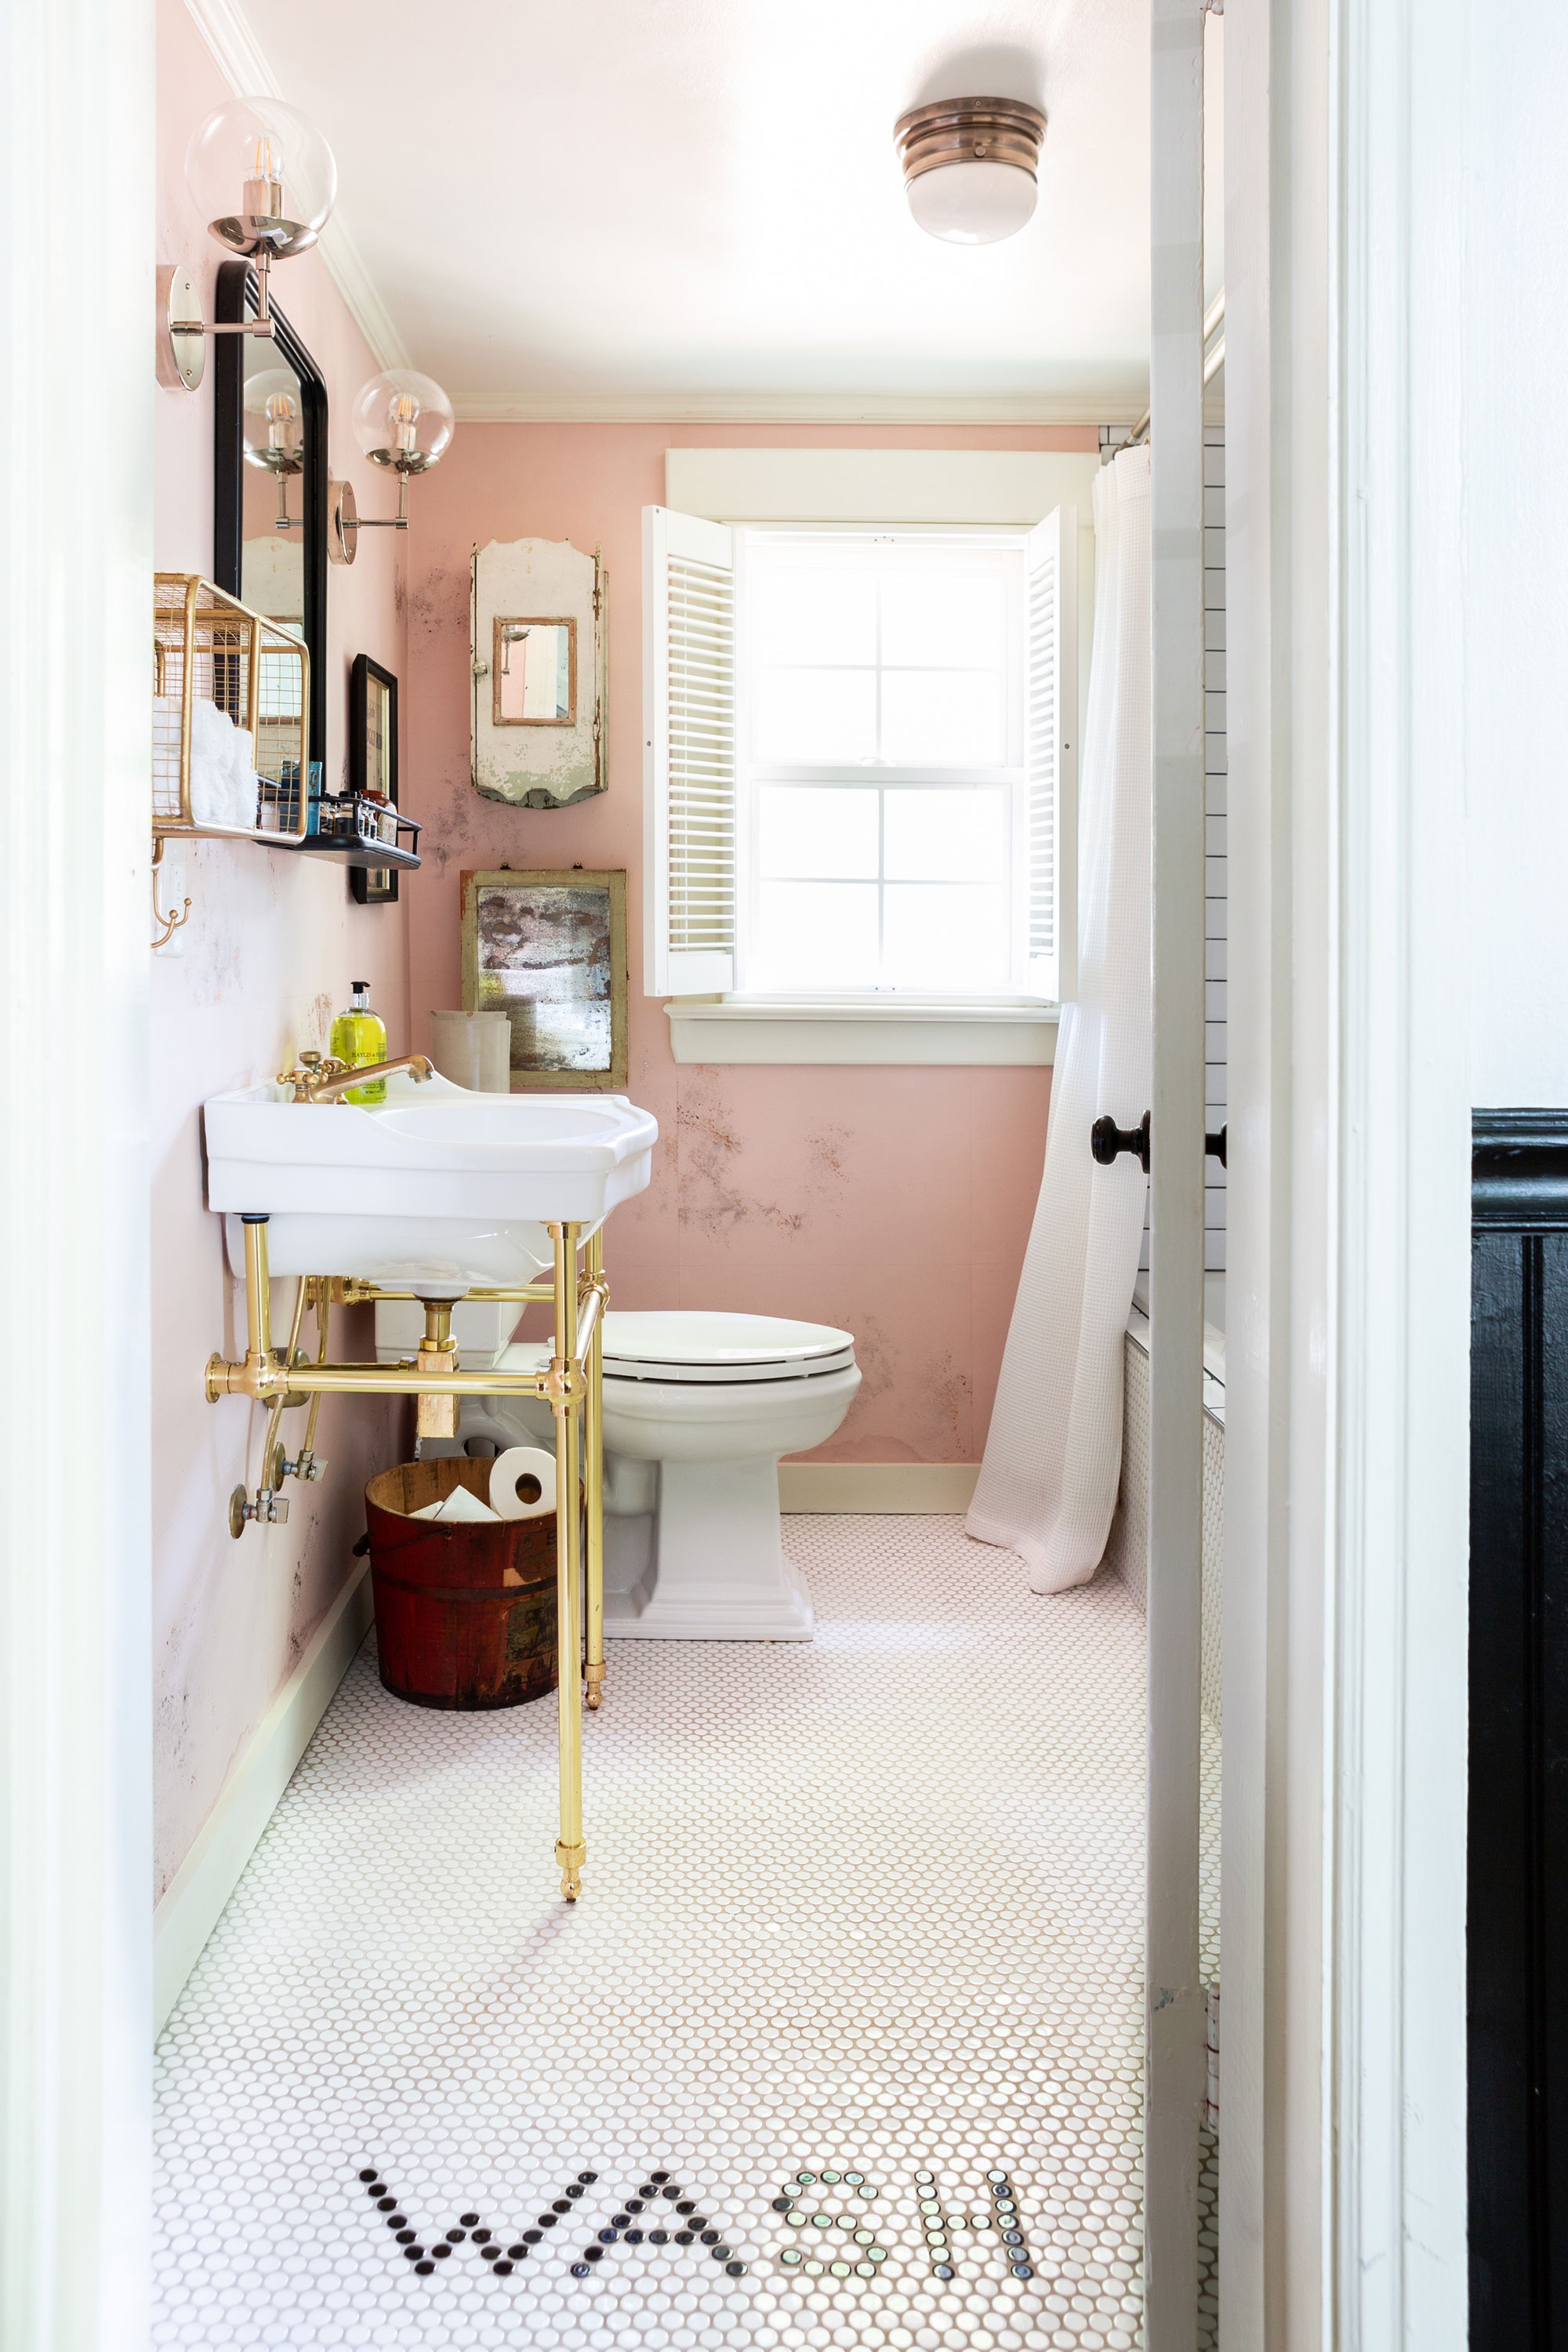 """""""No Southern home is complete without a stylish bathroom,"""" Holly says of her brassy, gold-on-pink design for the cottage's renovated water closet. """"There's absolutely got to be a soaking tub, too."""""""